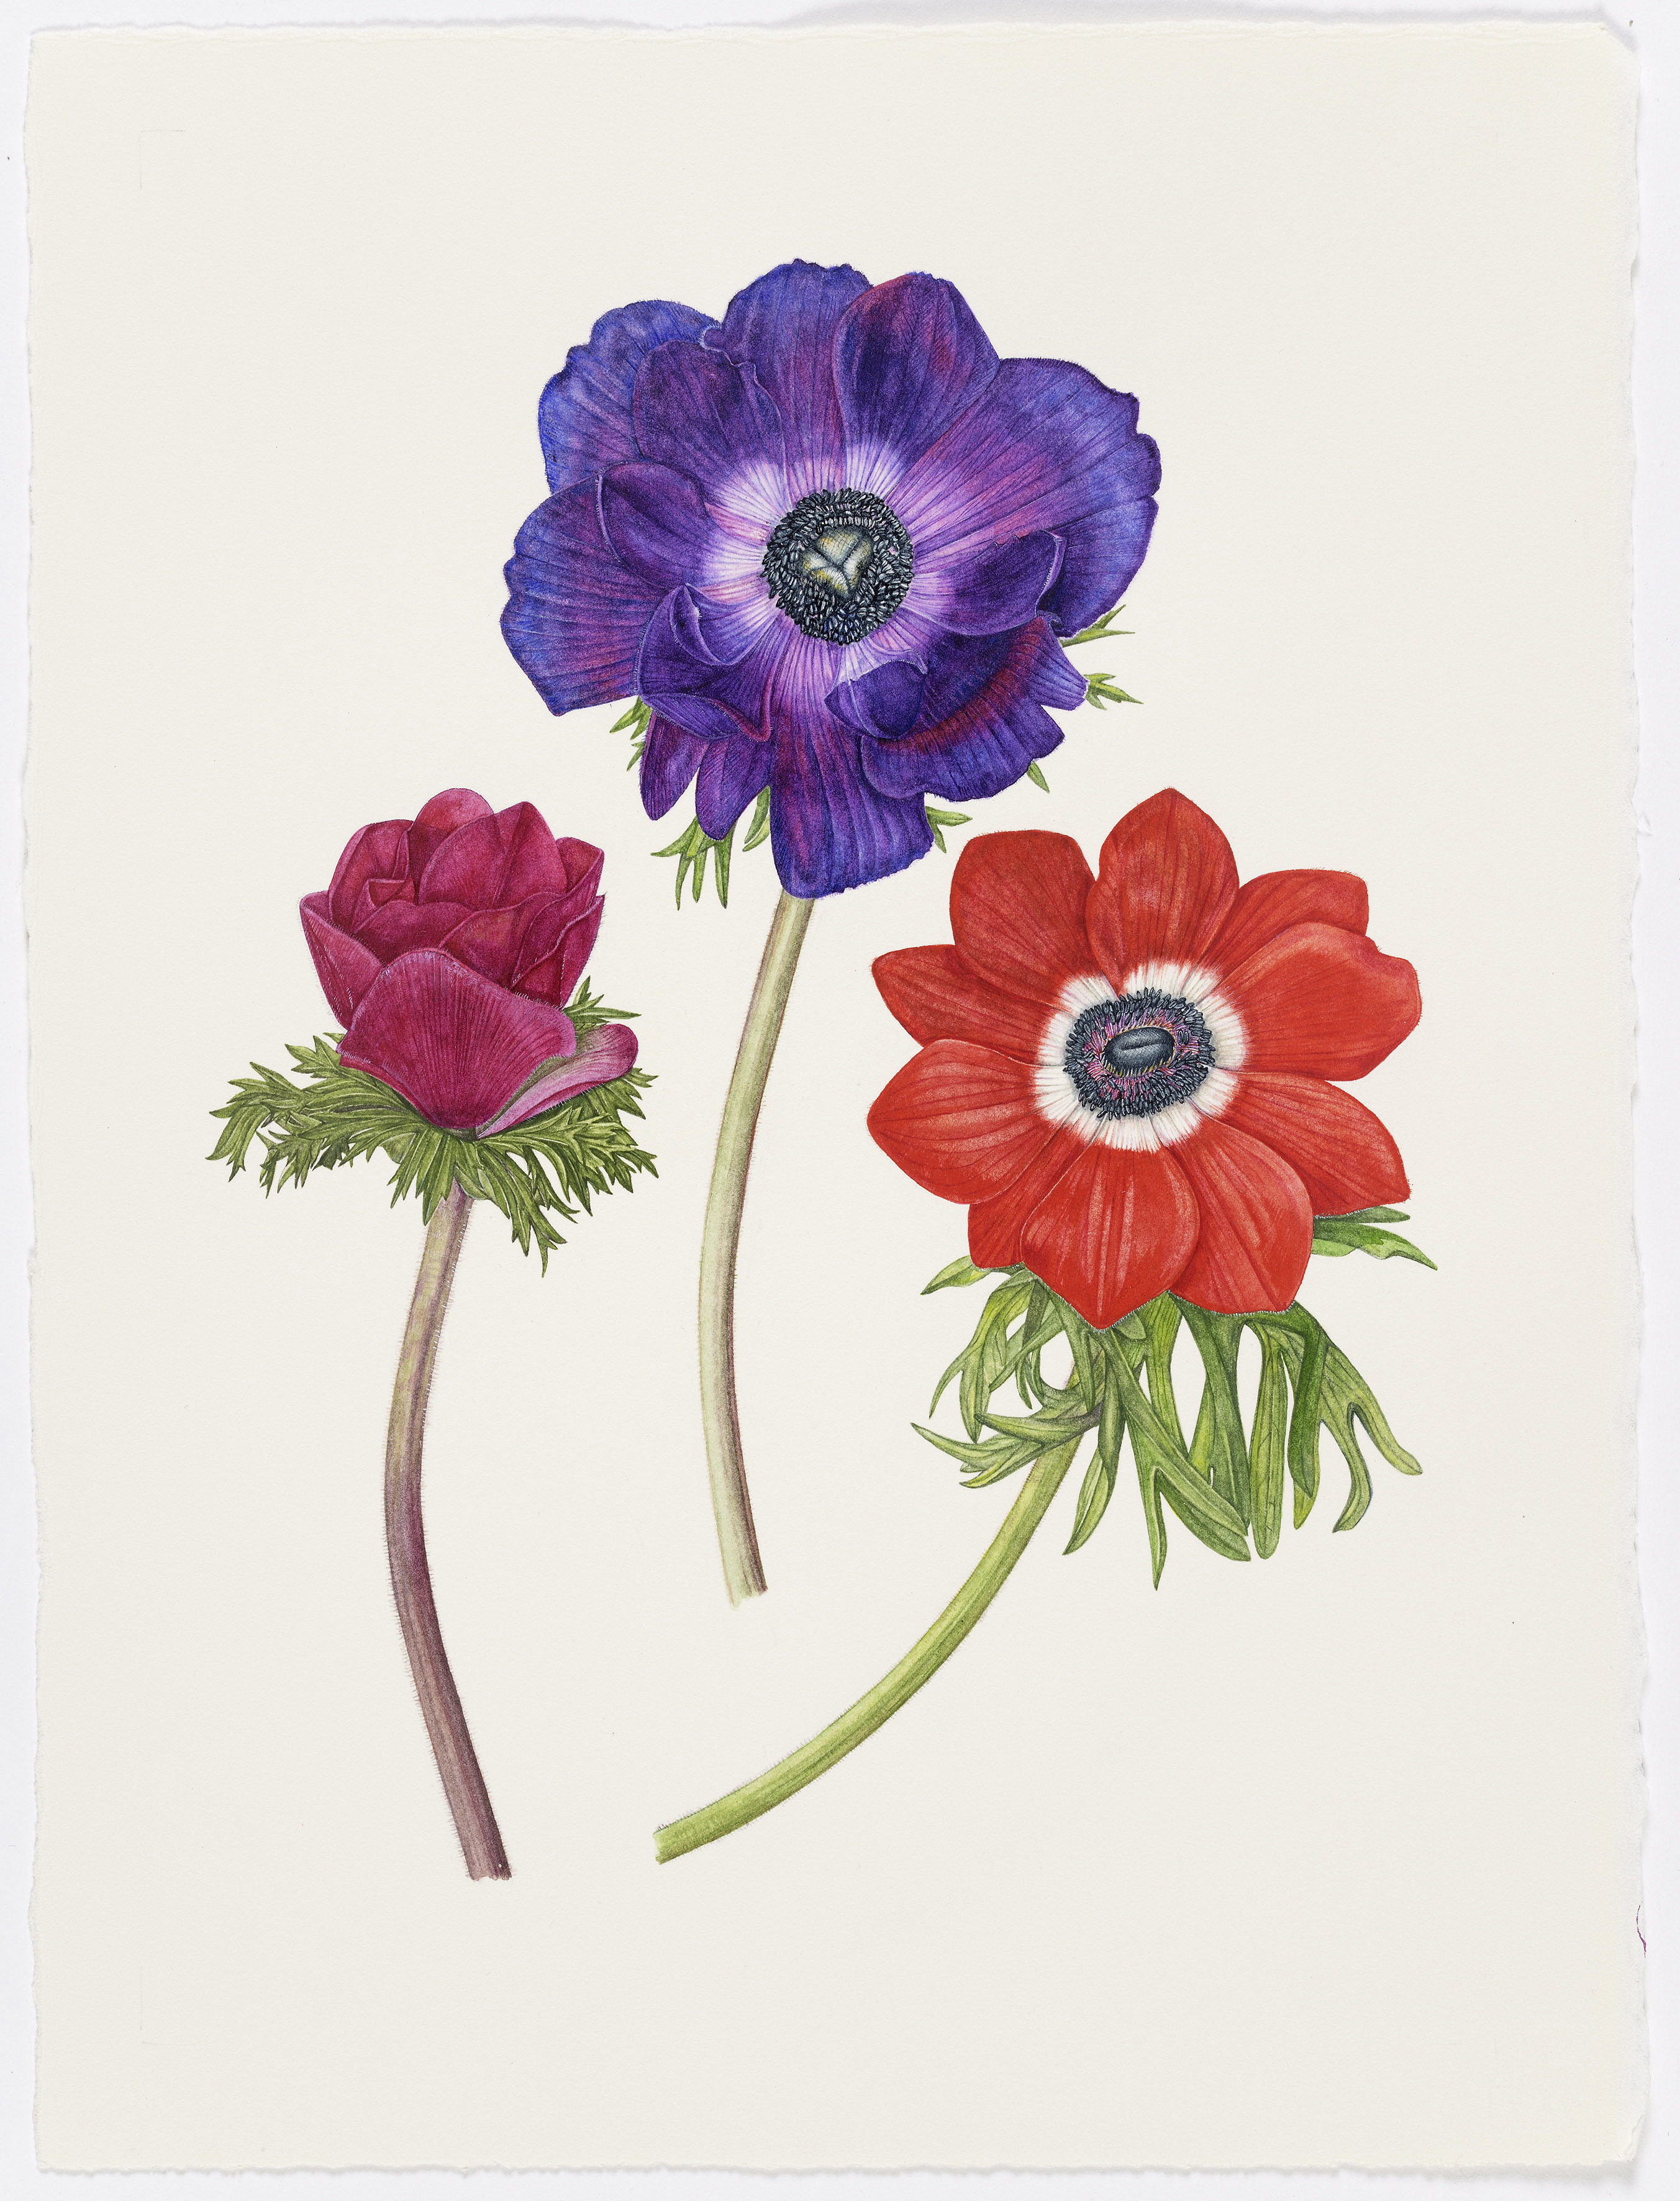 Painting of Anemones by Rachel Pedder-Smith